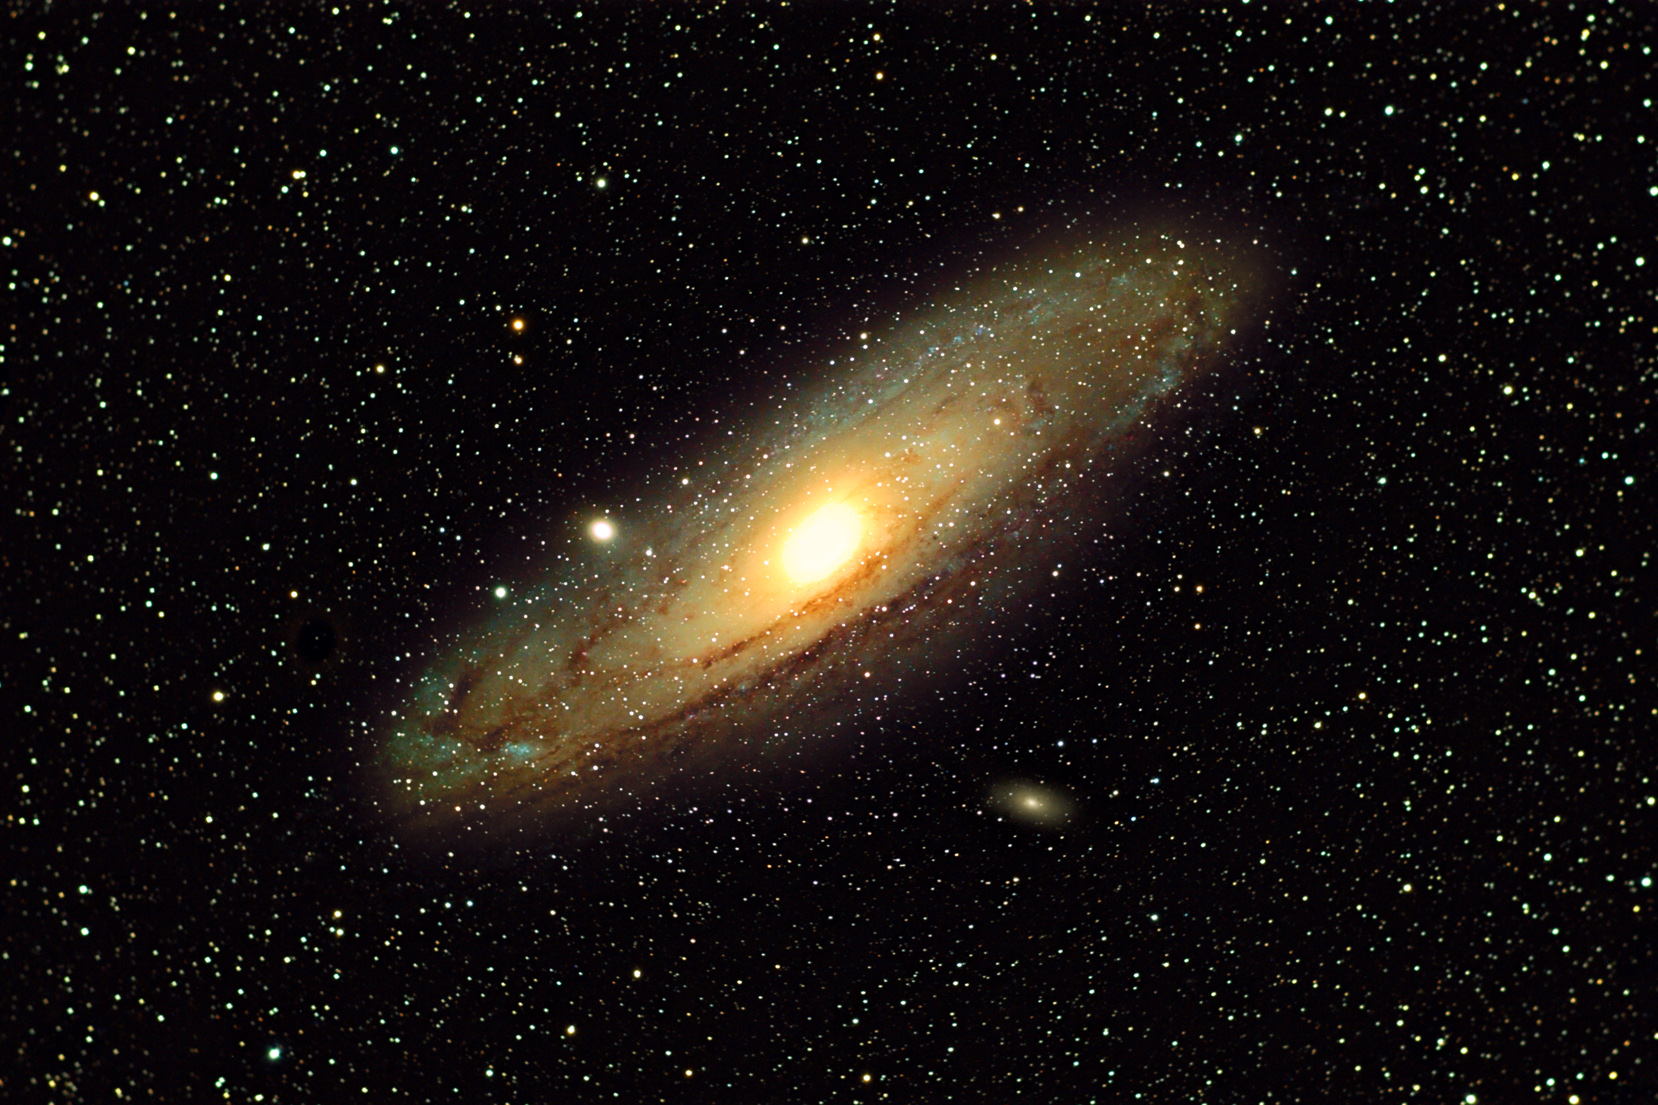 The Great Andromeda Galaxy (M31). Image taken by Scott Anttila.